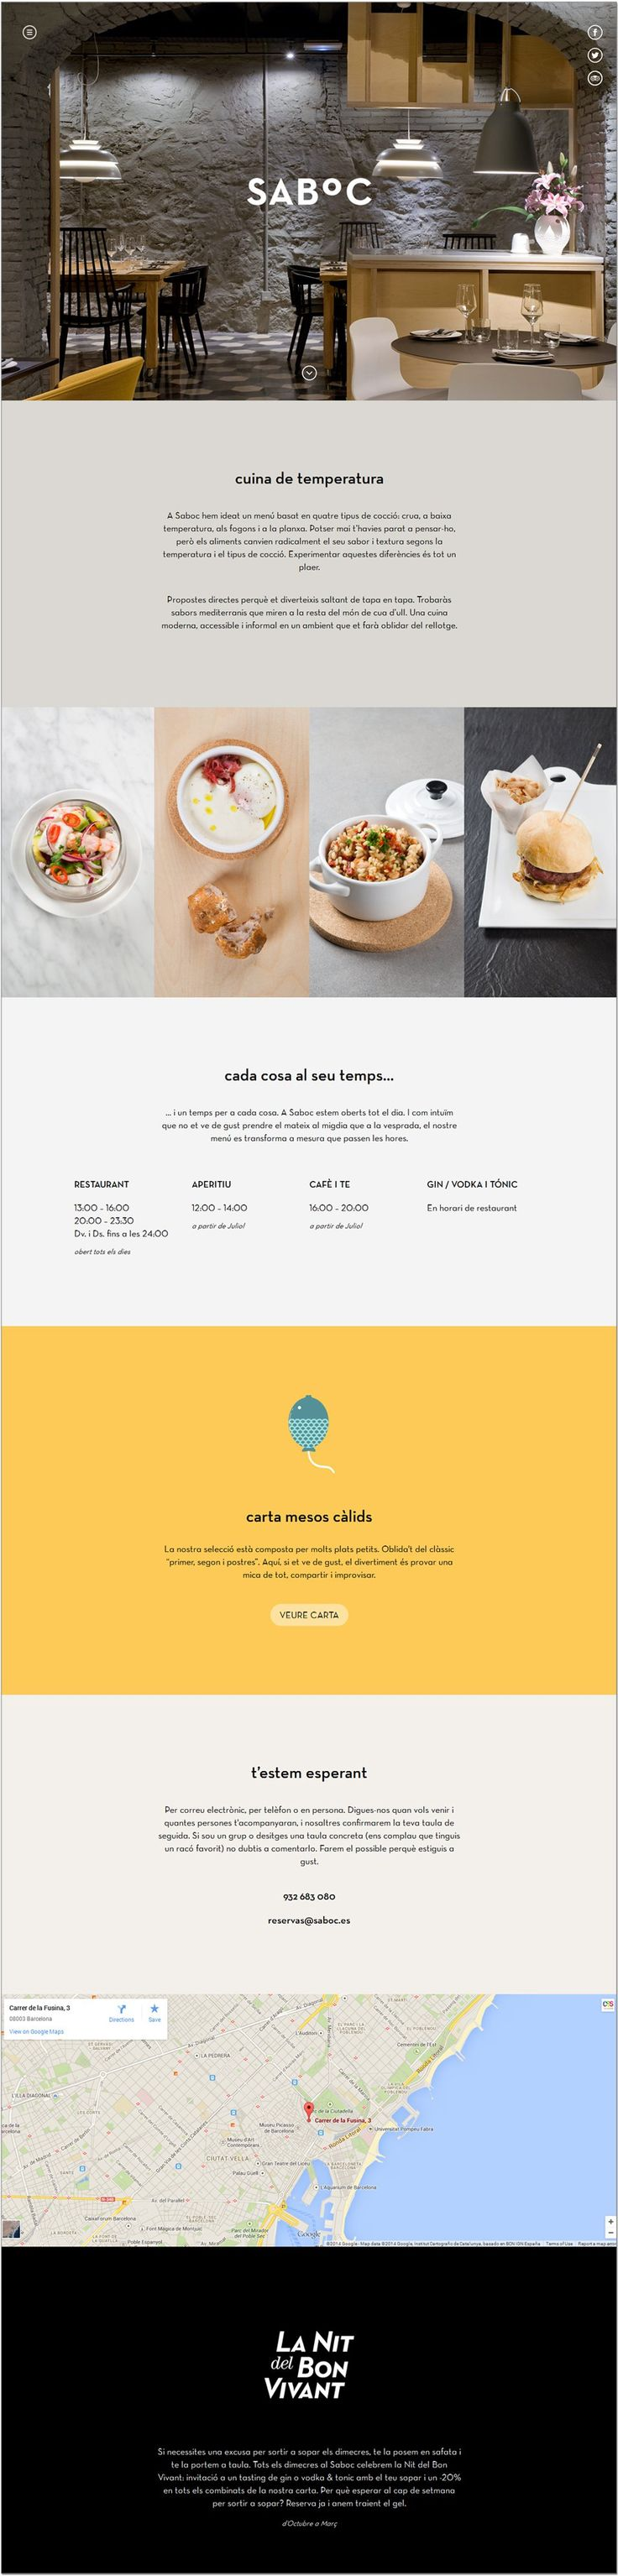 This website design is very simple and elegant. I really like how they formatted the text and I also think that the way they fit four photos of the product side-by-side works very well. // Hi Friends, look what I just found on #web #design! Make sure to follow us @moirestudiosjkt to see more pins like this | Moire Studios is a thriving website and graphic design studio based in Jakarta, Indonesia.